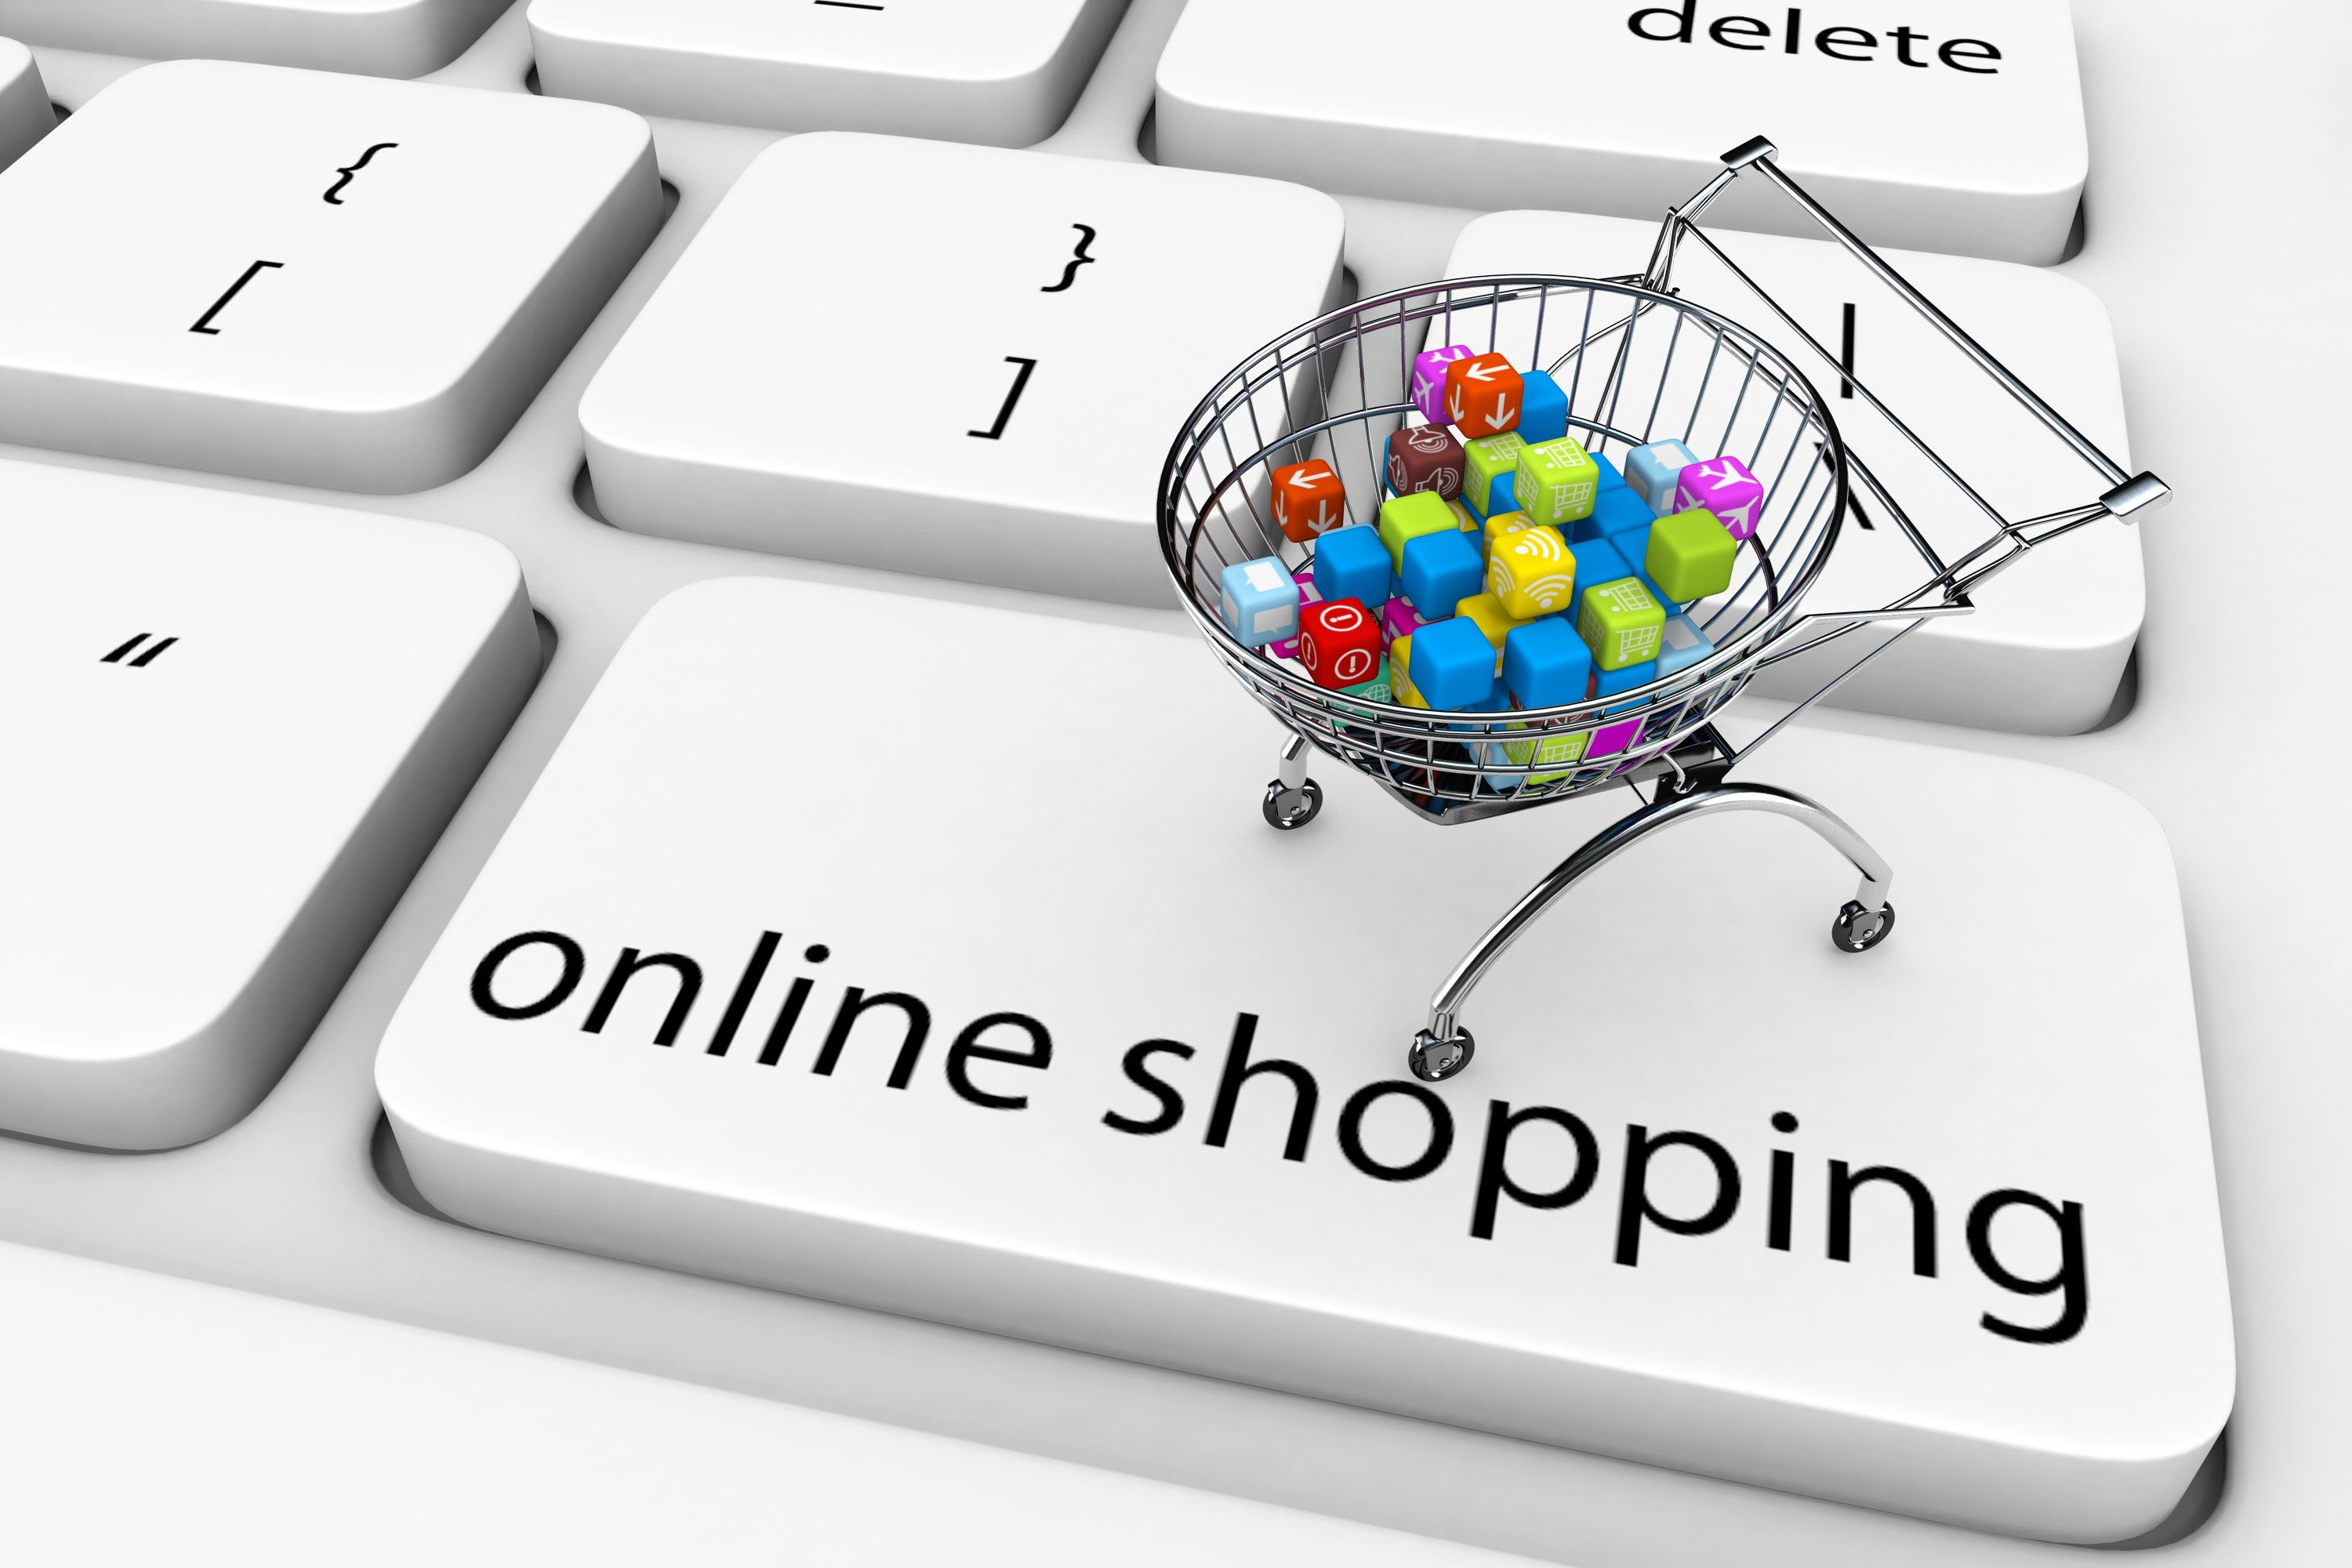 ce18eb4cbac7 5 Online Shopping Hacks Every Individual Must Know - Shopping Anywhere